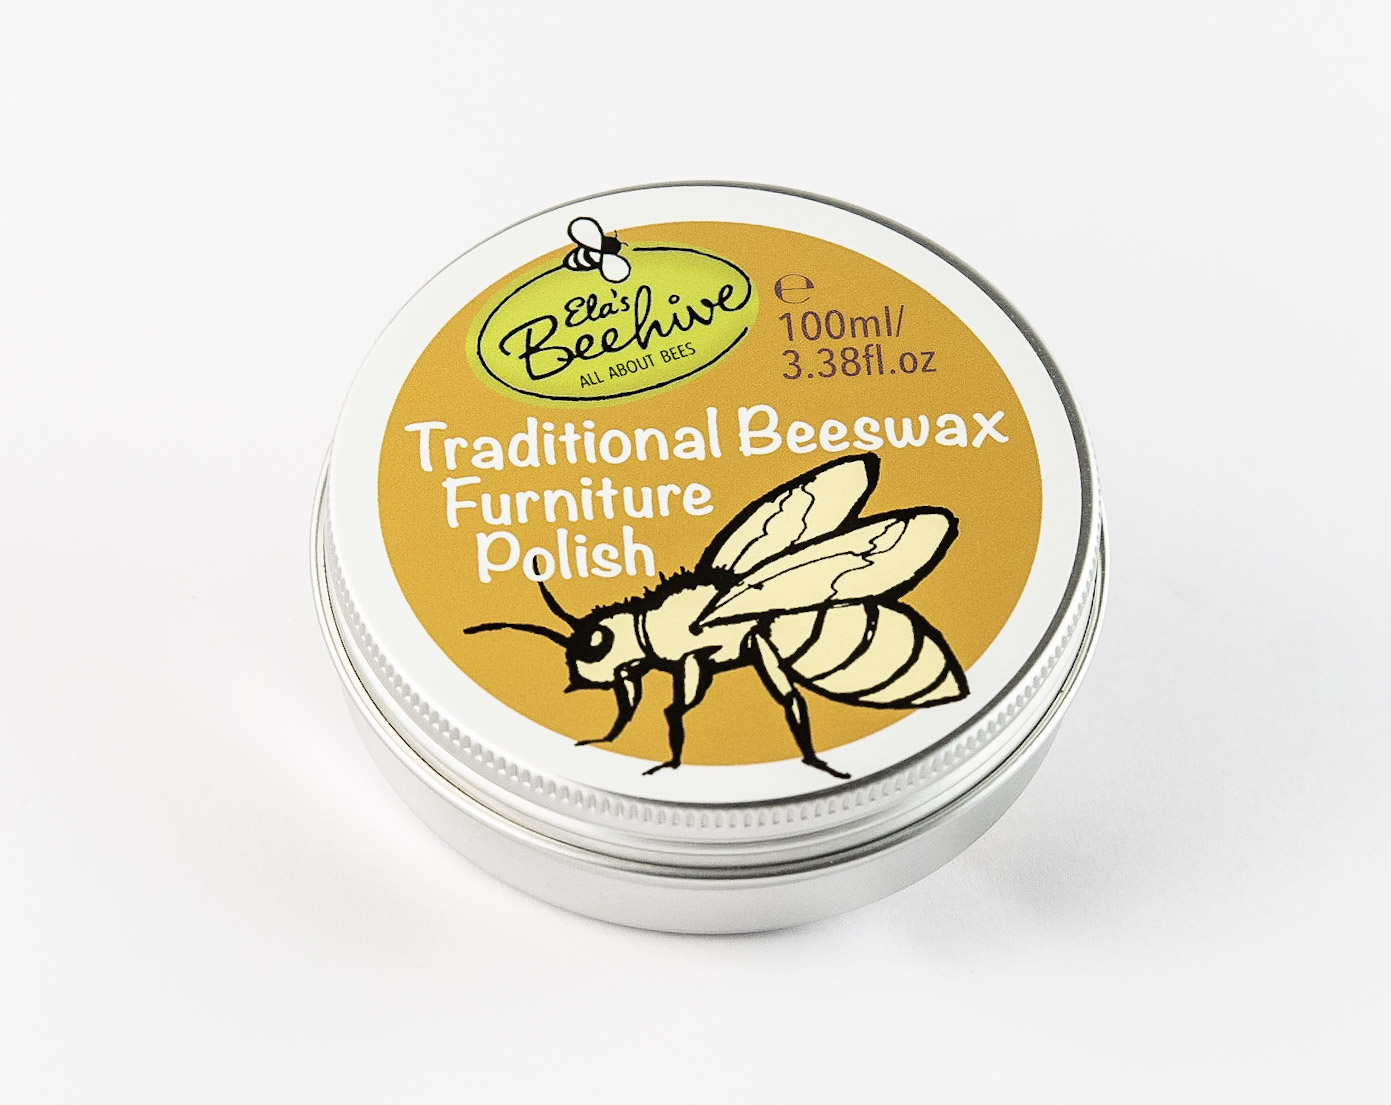 Traditional Beeswax Furniture Polish